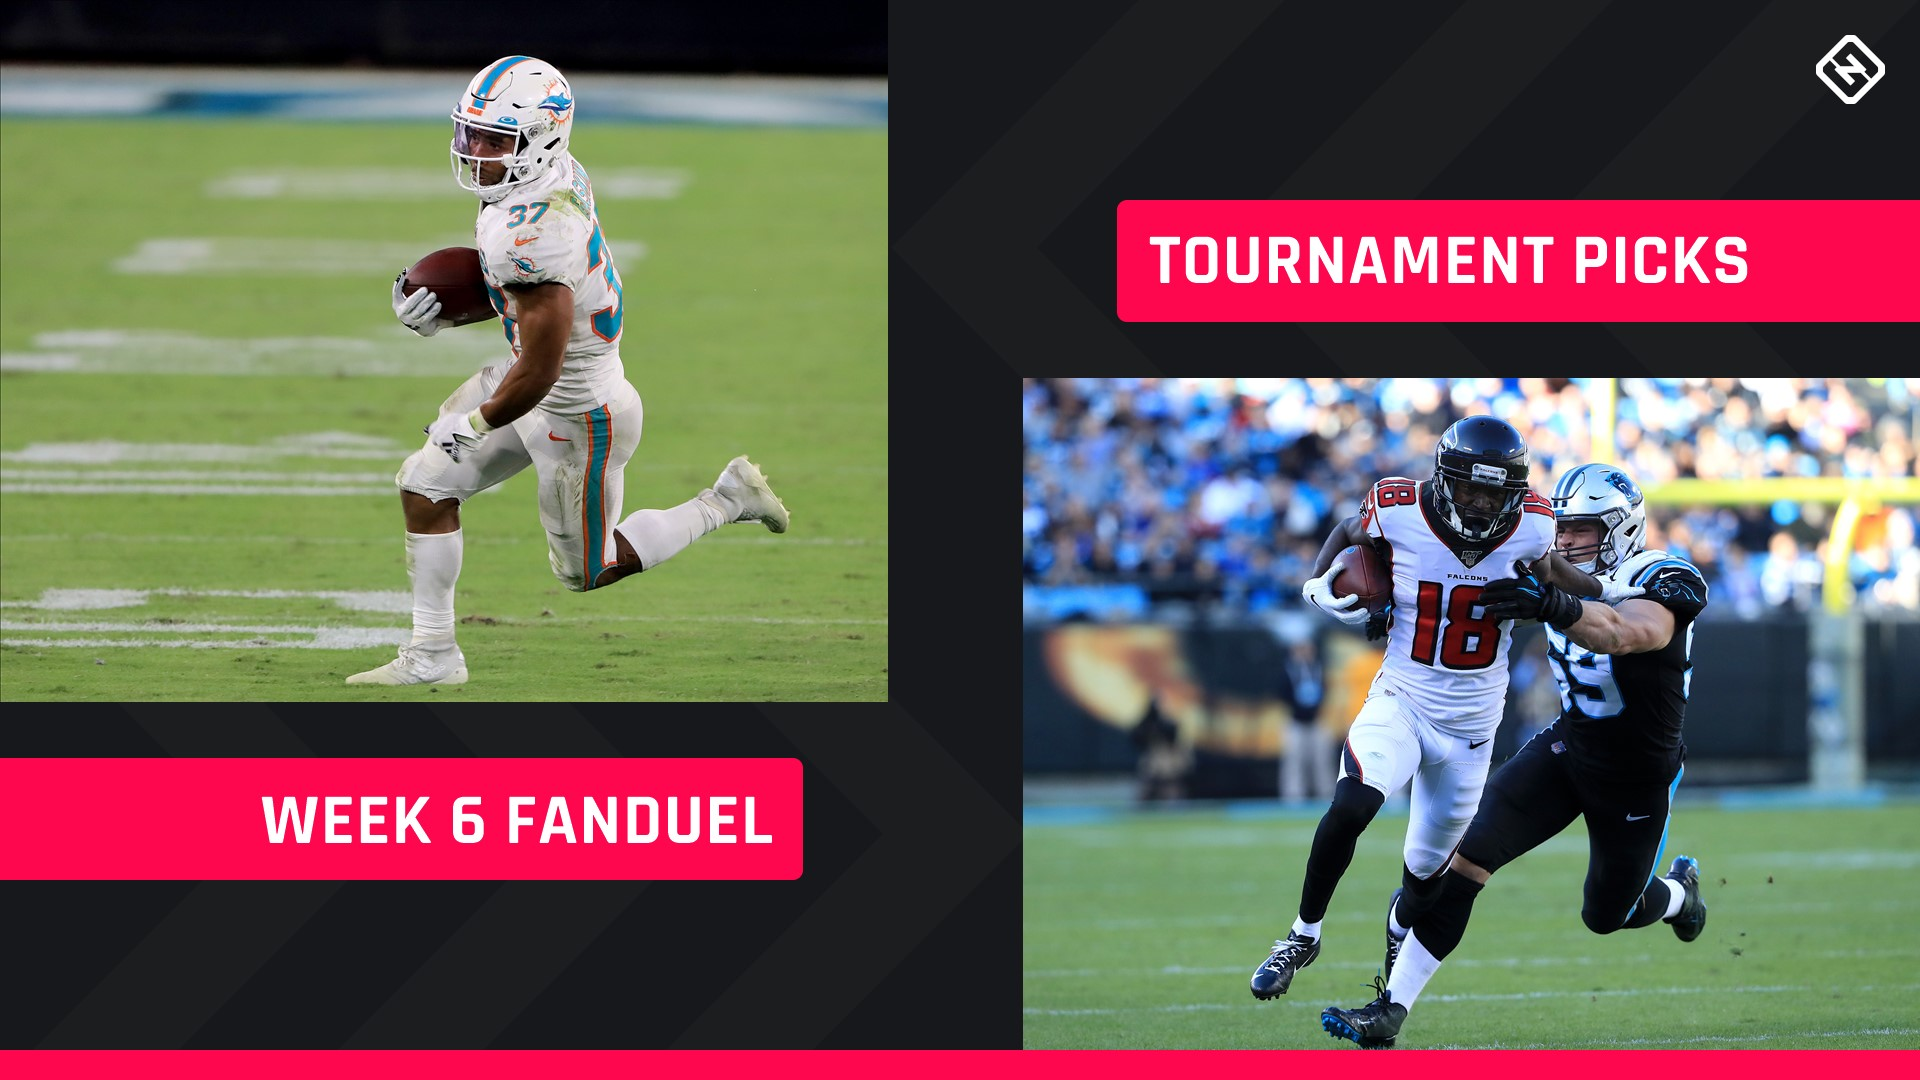 Week 6 FanDuel Picks: NFL DFS lineup advice for daily fantasy football GPP tournaments